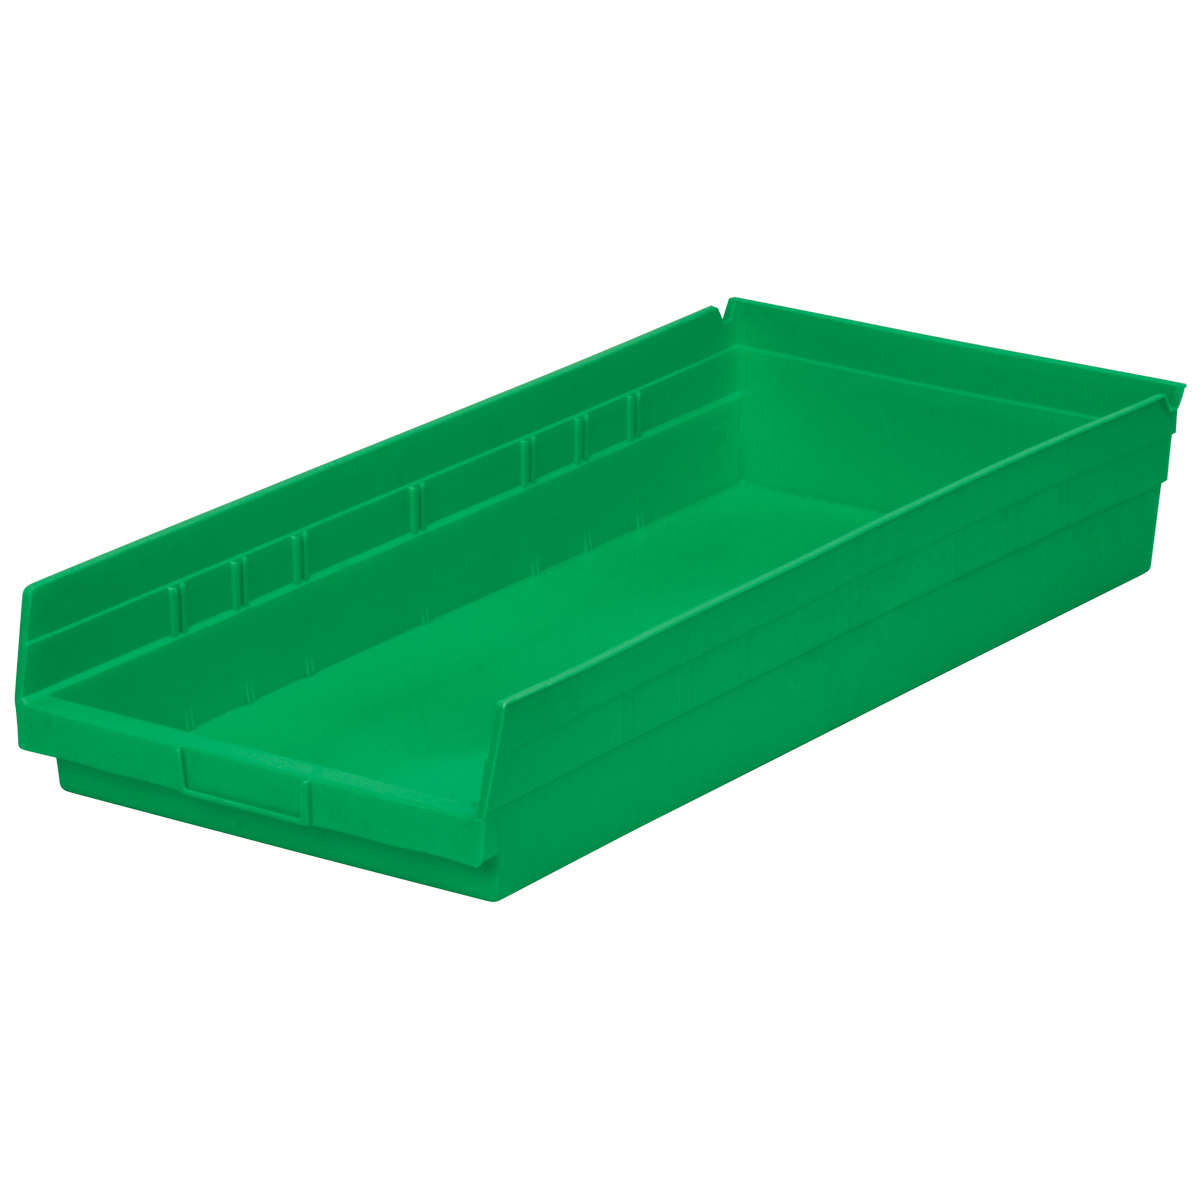 Shelf Bin 23-5/8 x 11-1/8 x 4, Green (30174GREEN).  This item sold in carton quantities of 6.